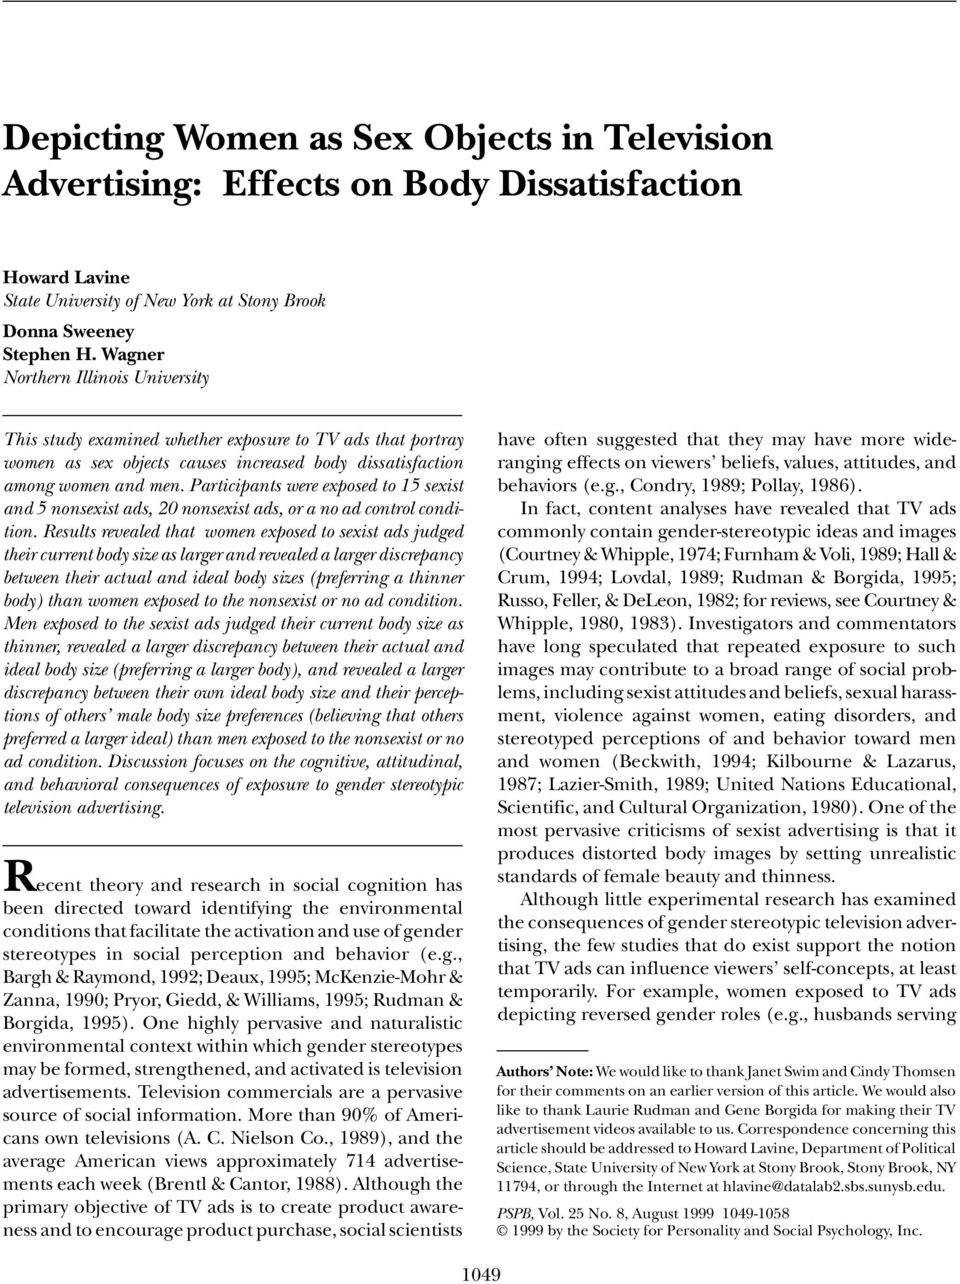 The Negative Effects of Women's Advertisements